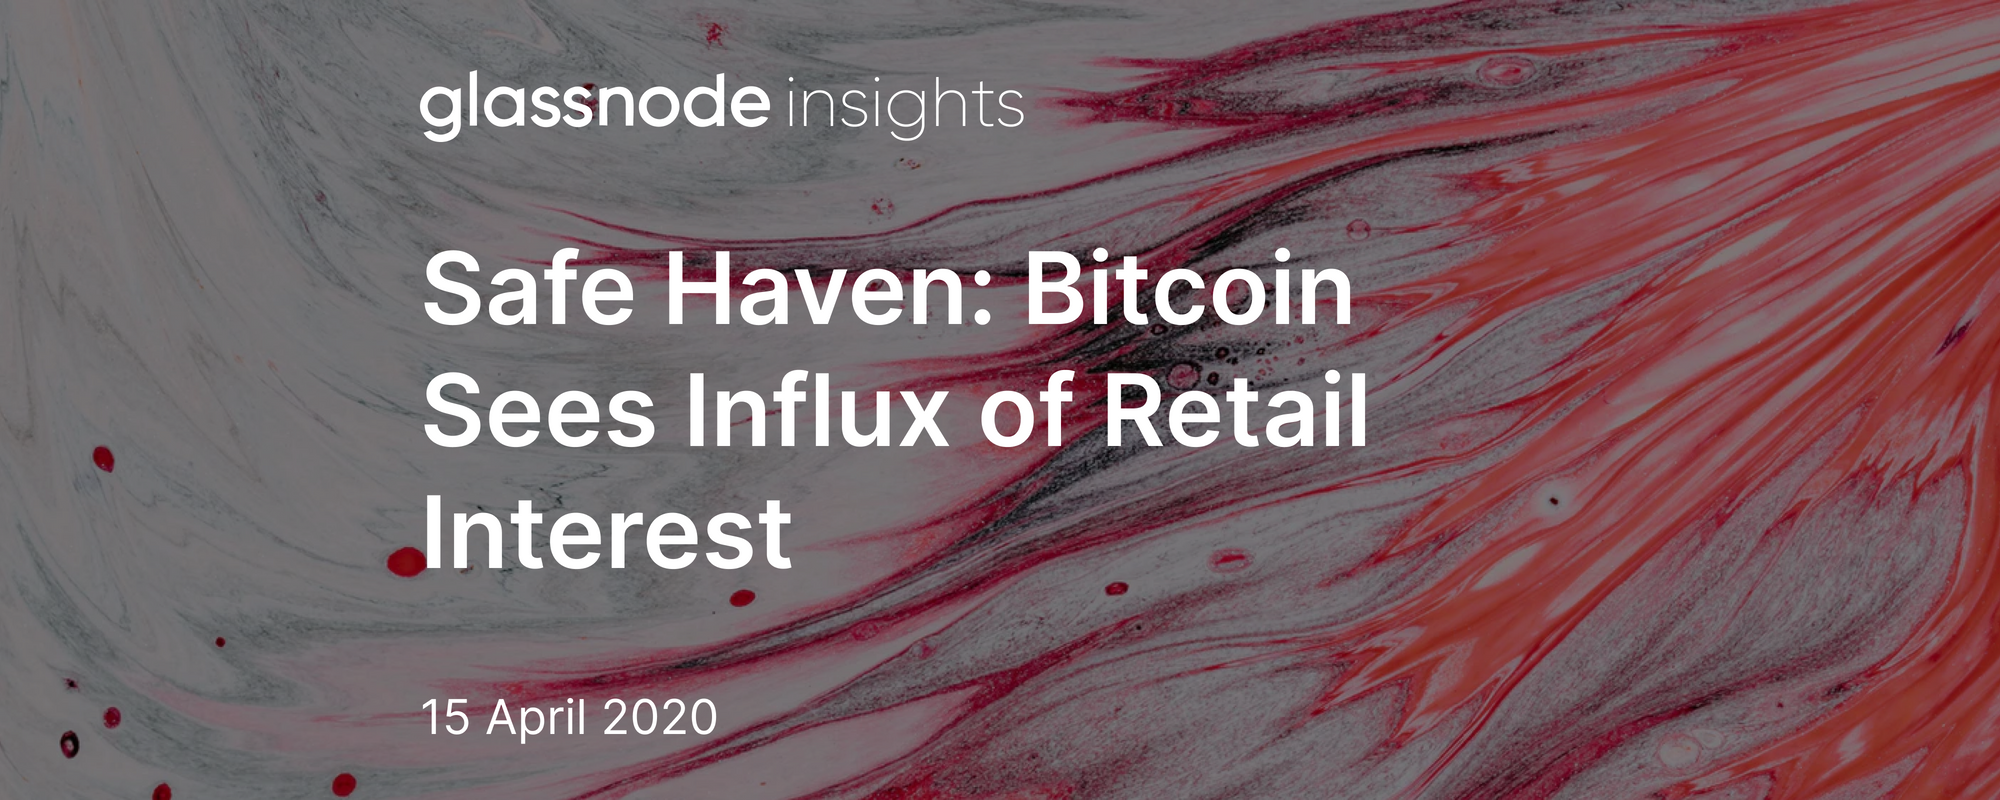 Safe Haven: Bitcoin Sees Influx of Retail Interest